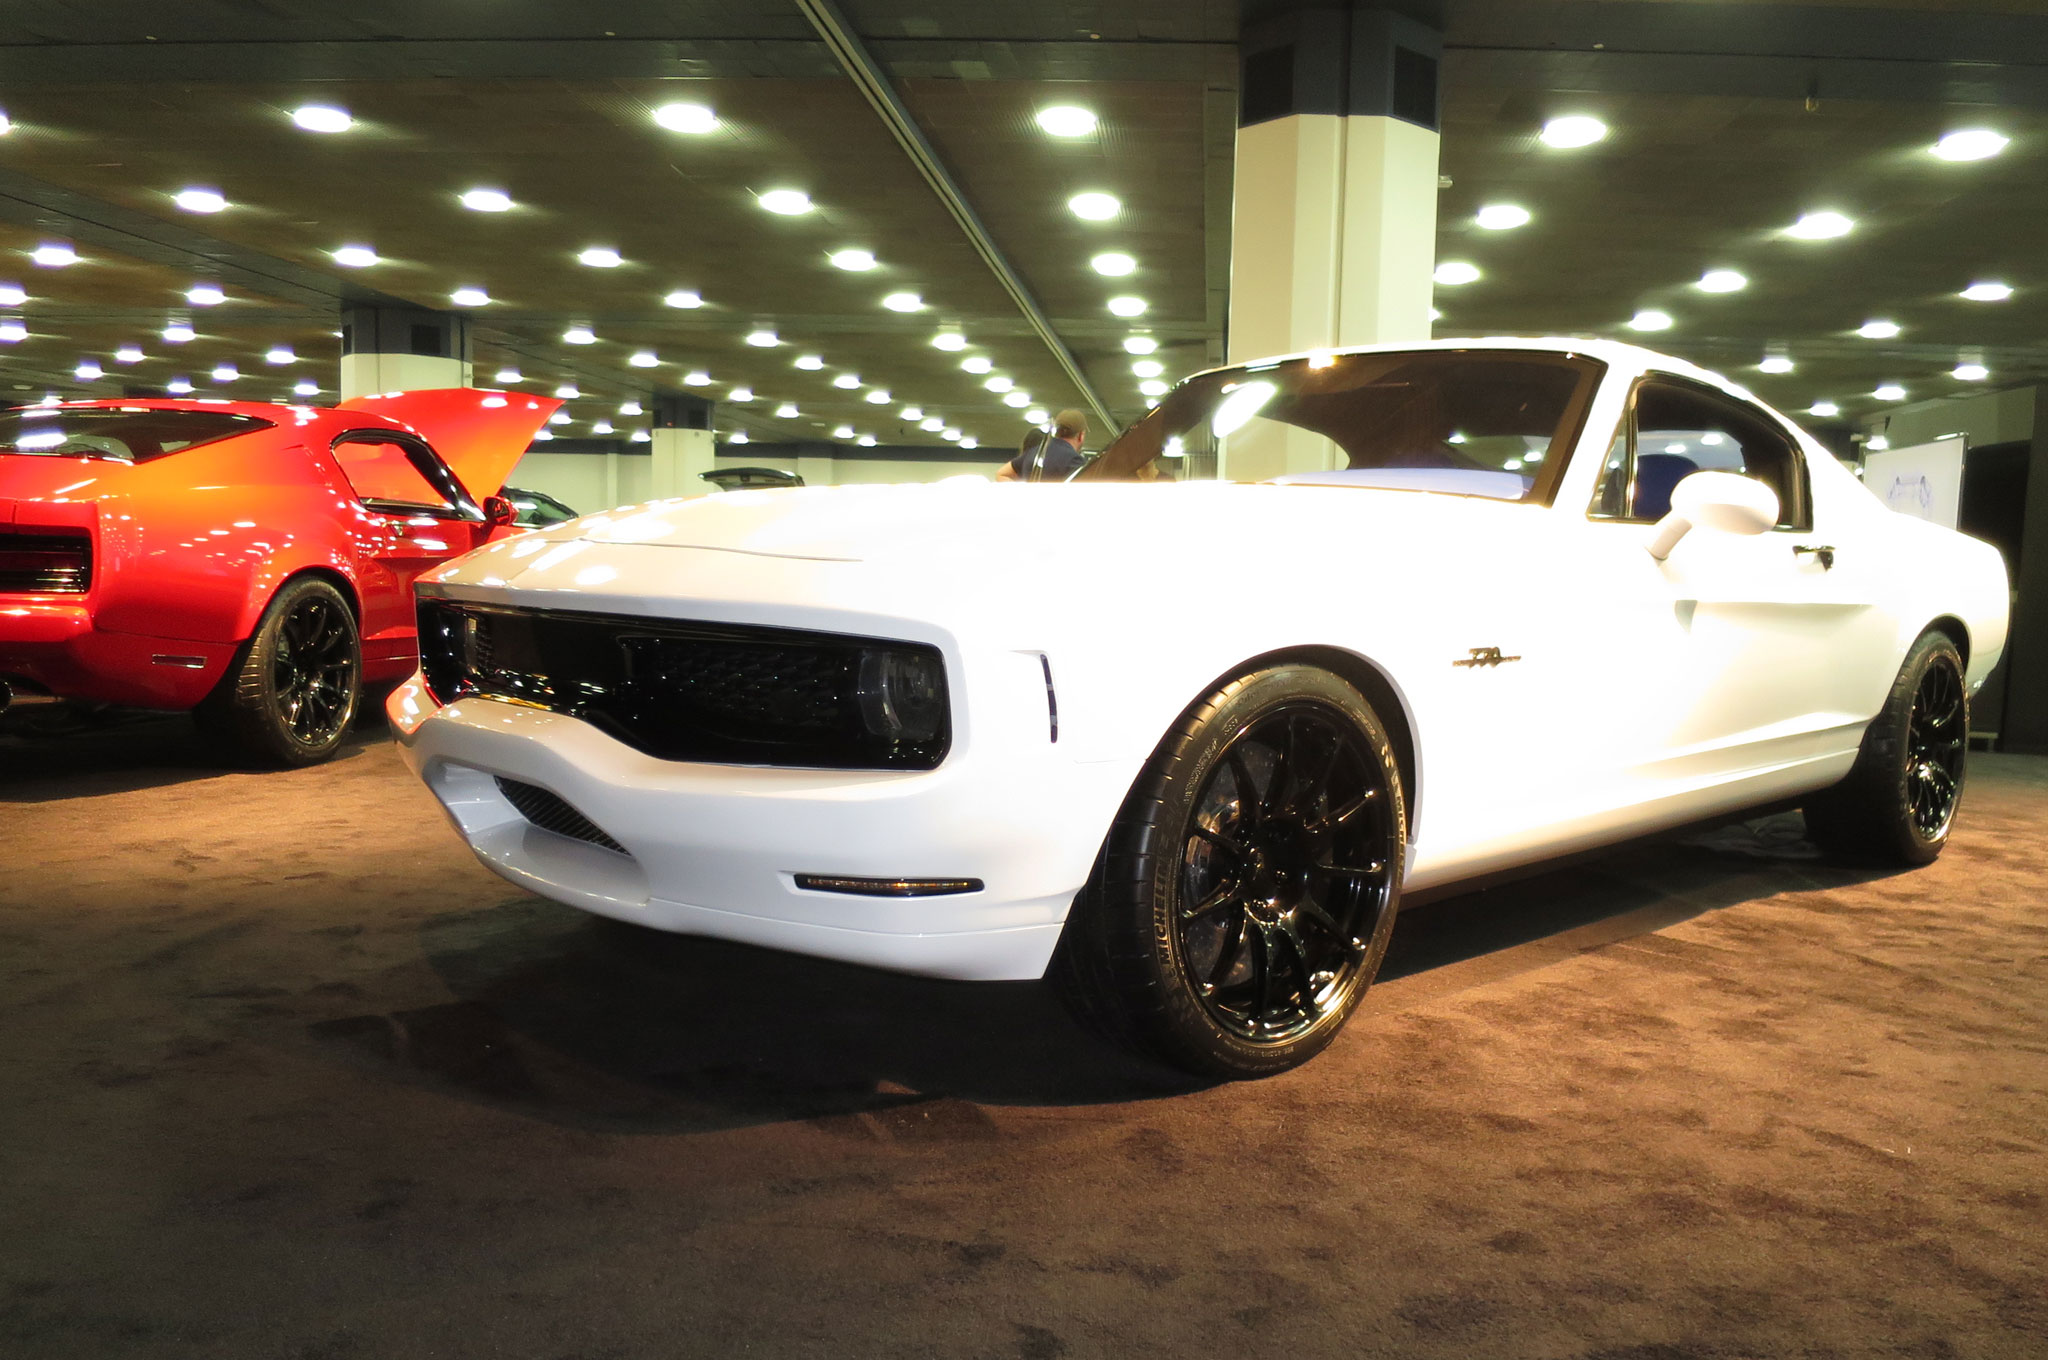 2015 Equus Bass770 First Look from the 2014 Detroit Auto Show ...